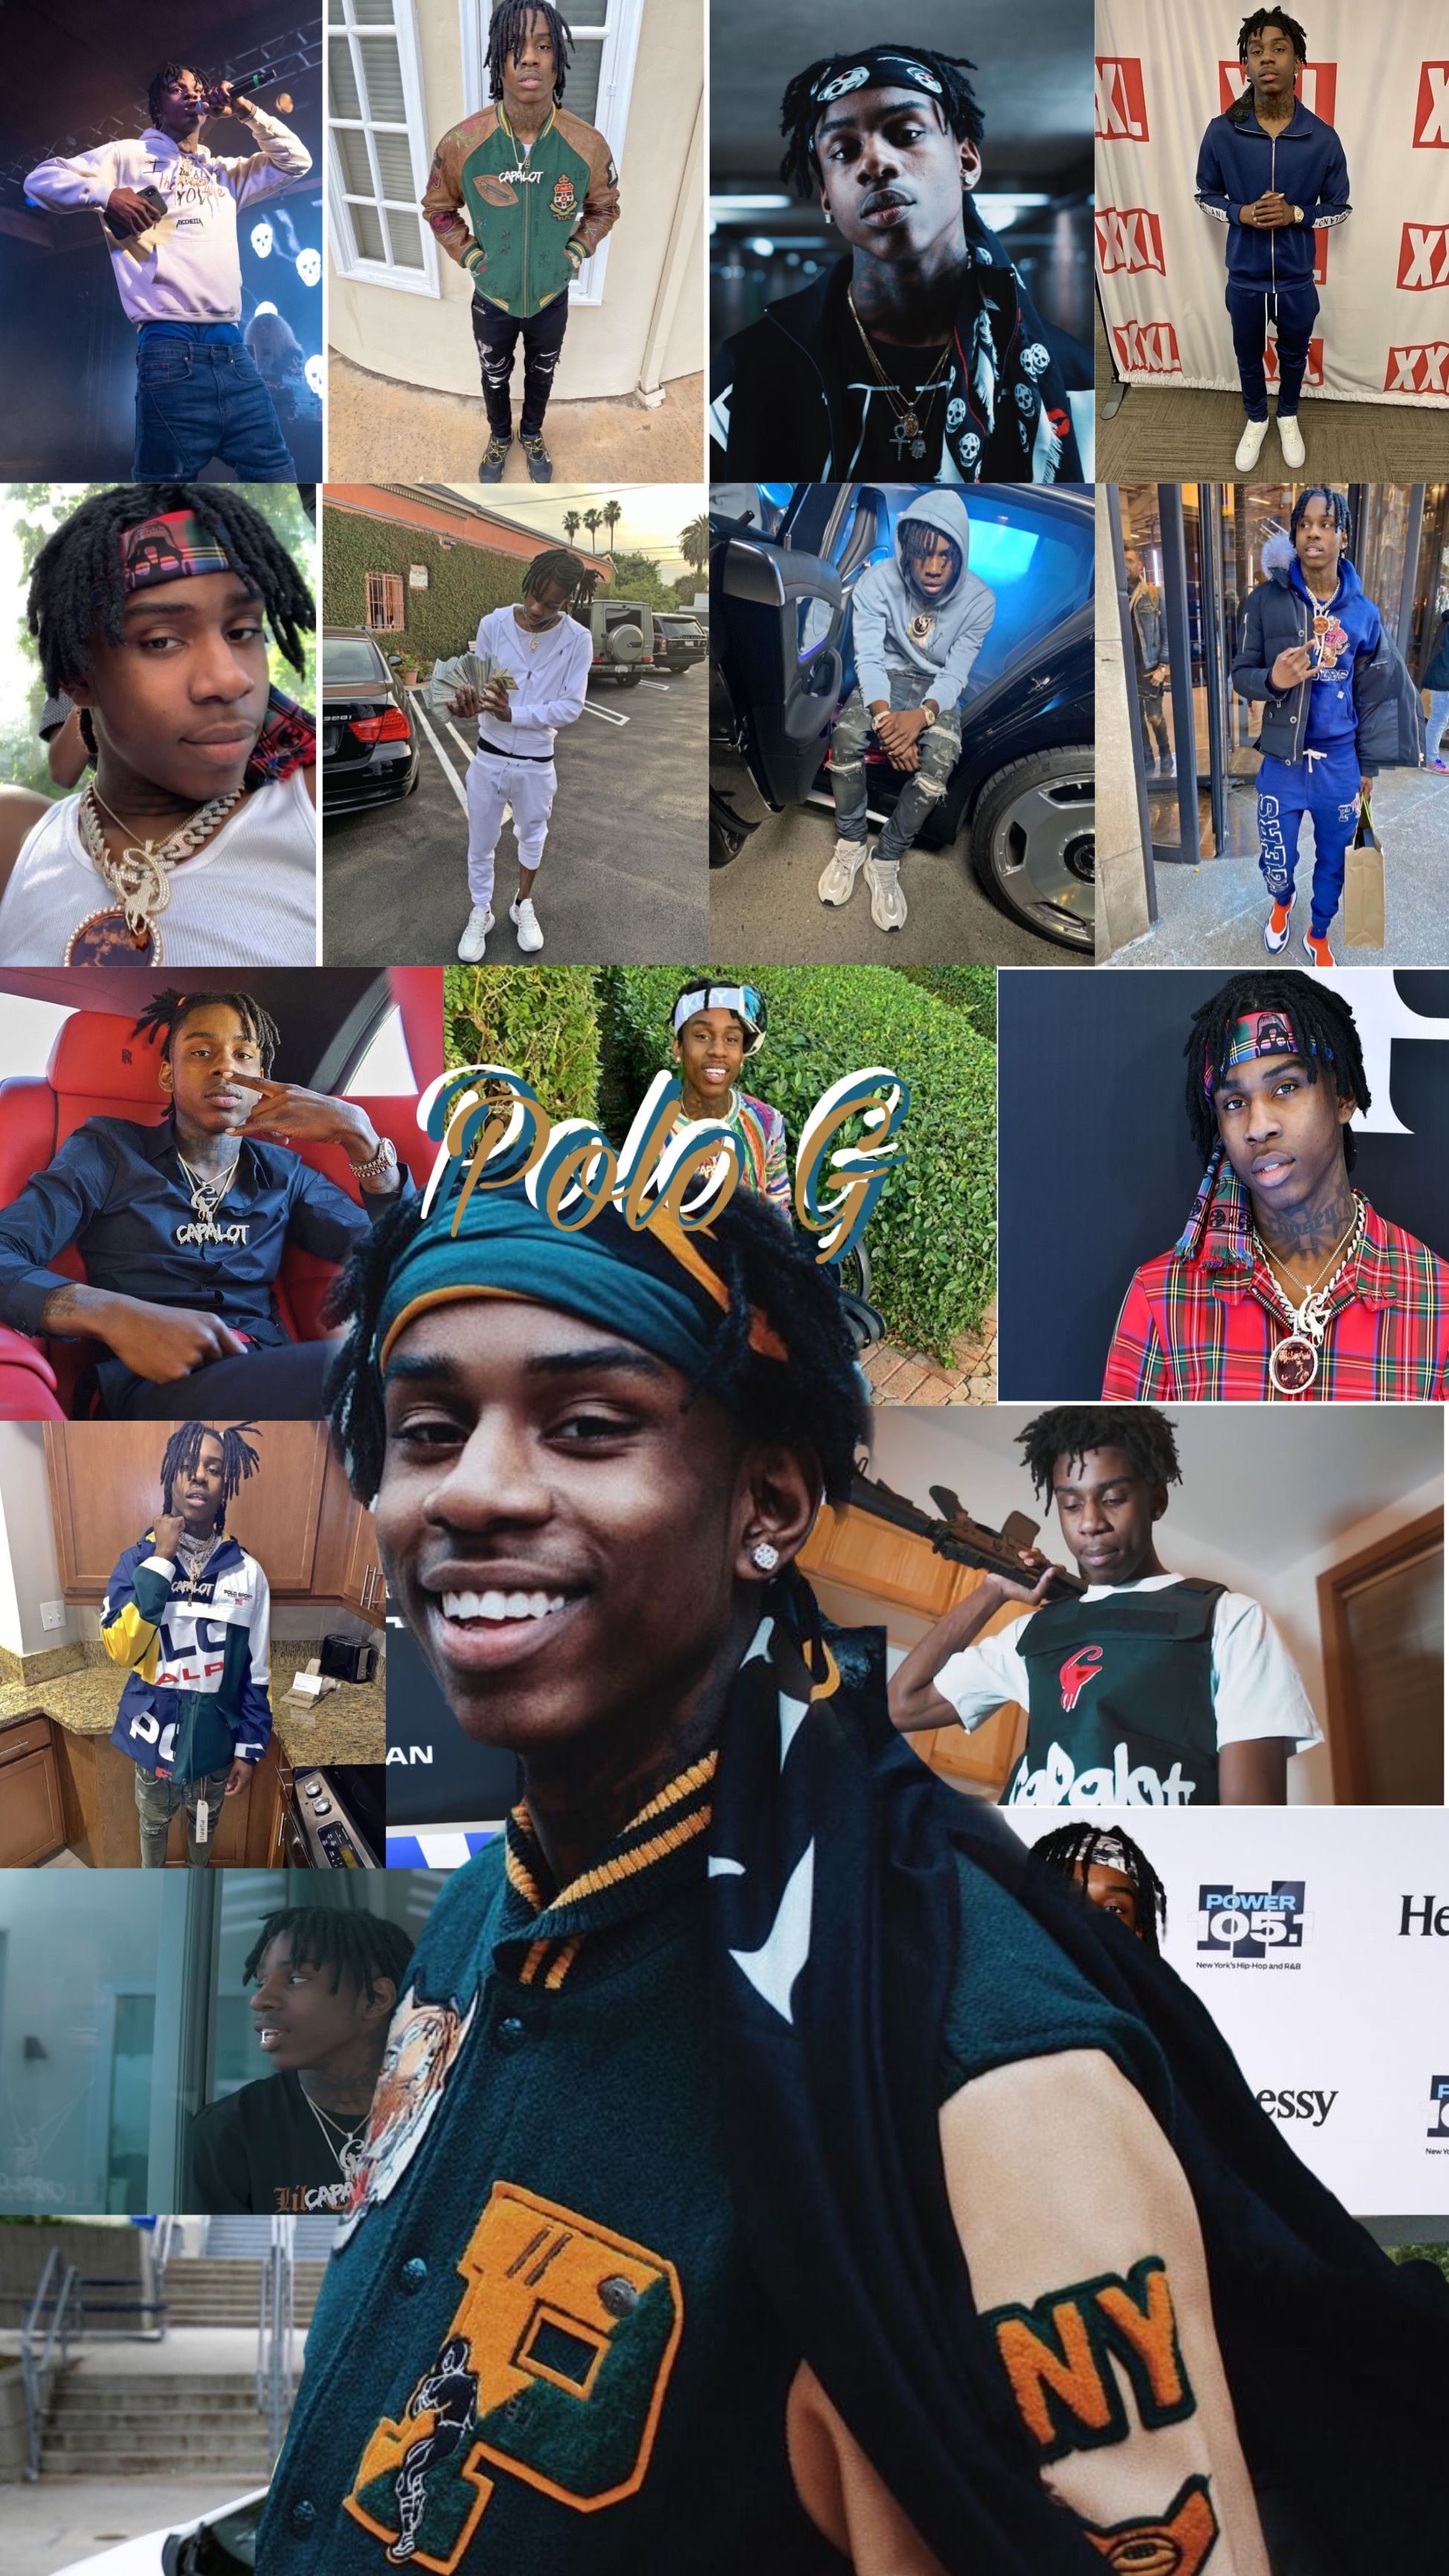 Pin Polo G Xoxoangeel Rapper Wallpaper Iphone Cute Rappers Edgy Wallpaper